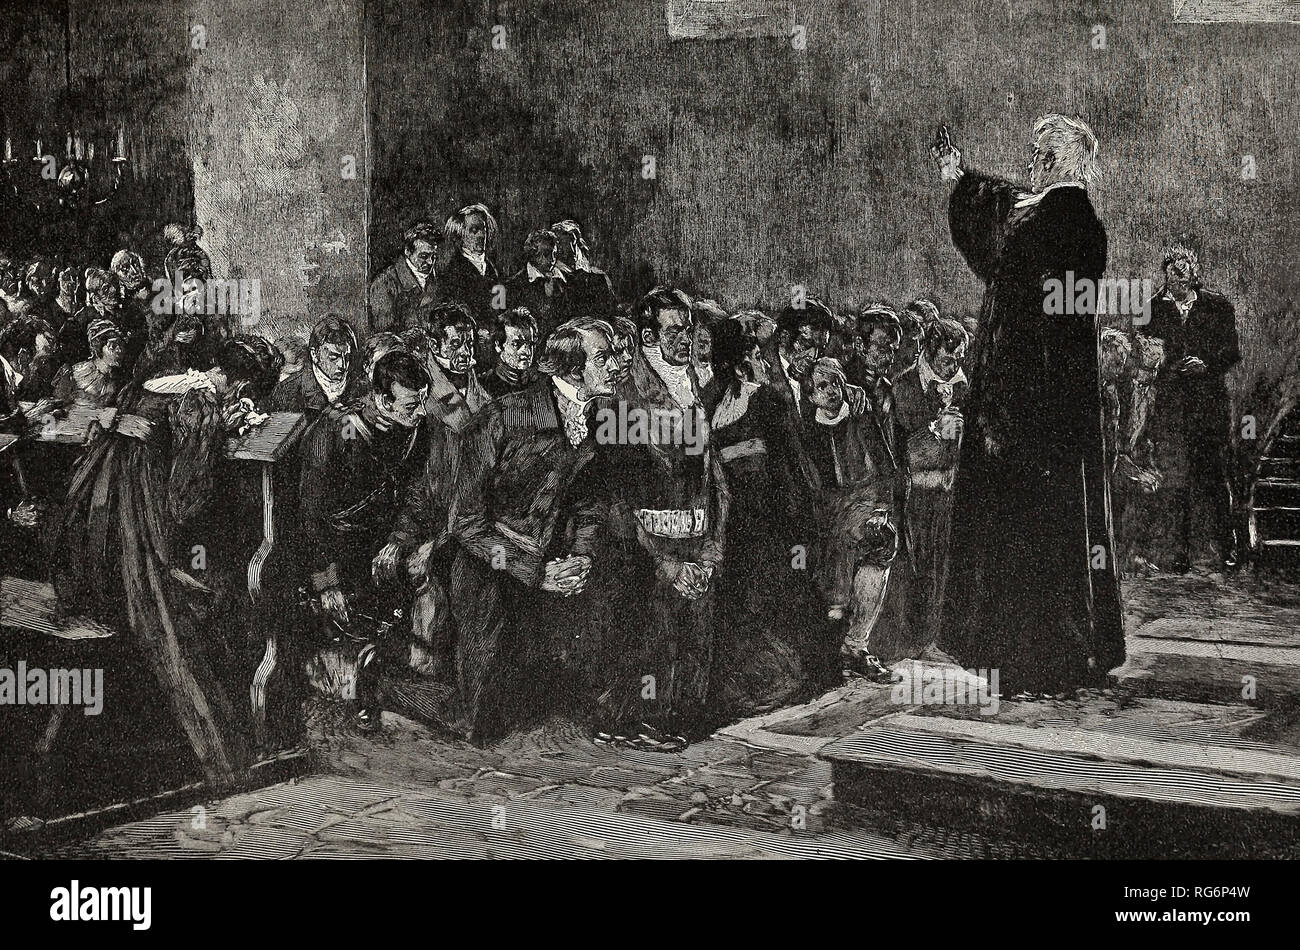 The gathering of the Prussians under their pastors for the War of 1813 - Stock Image